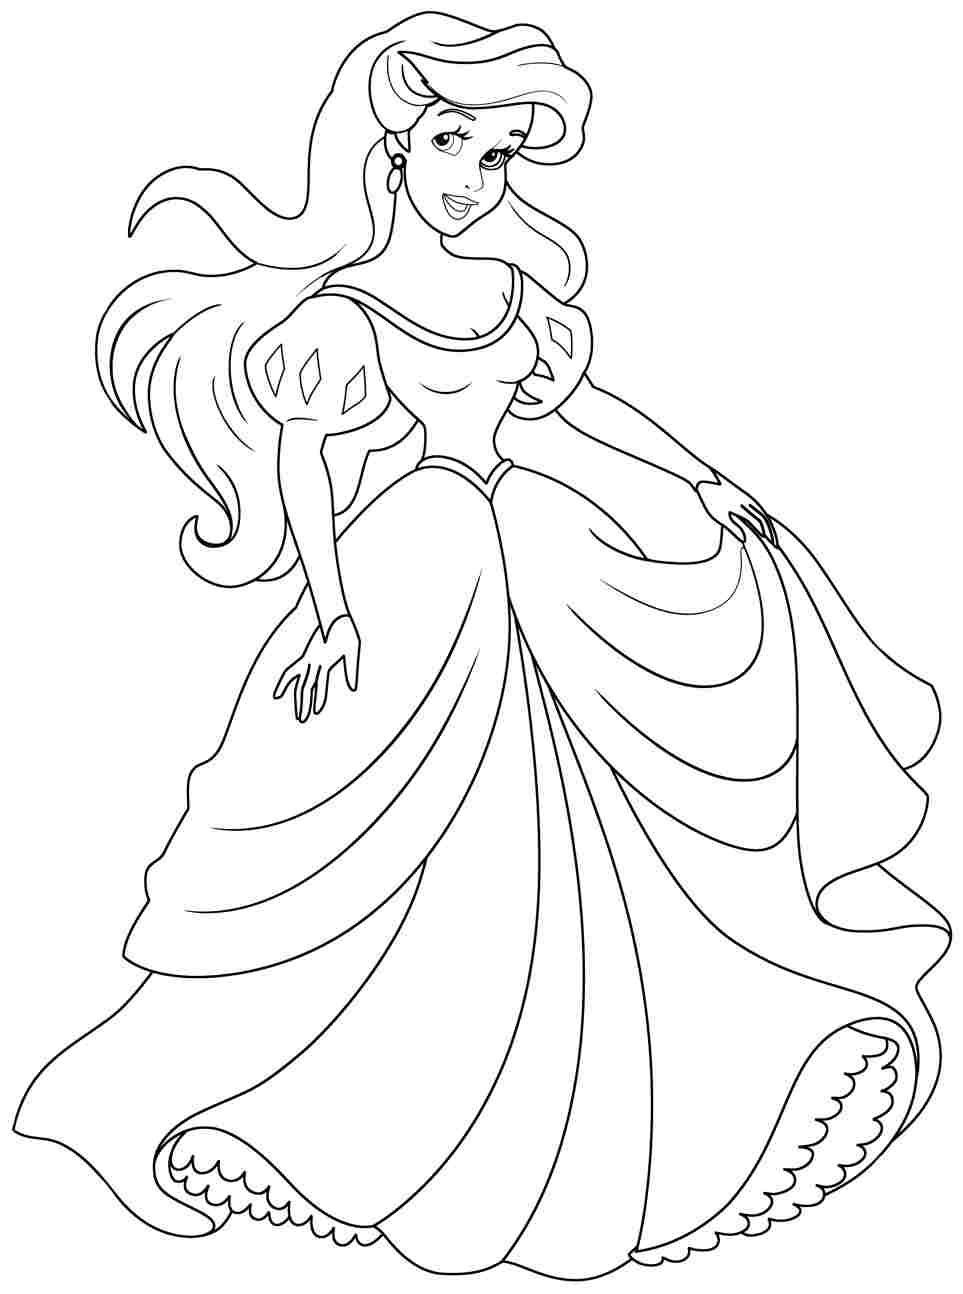 Ariel coloring pages to download